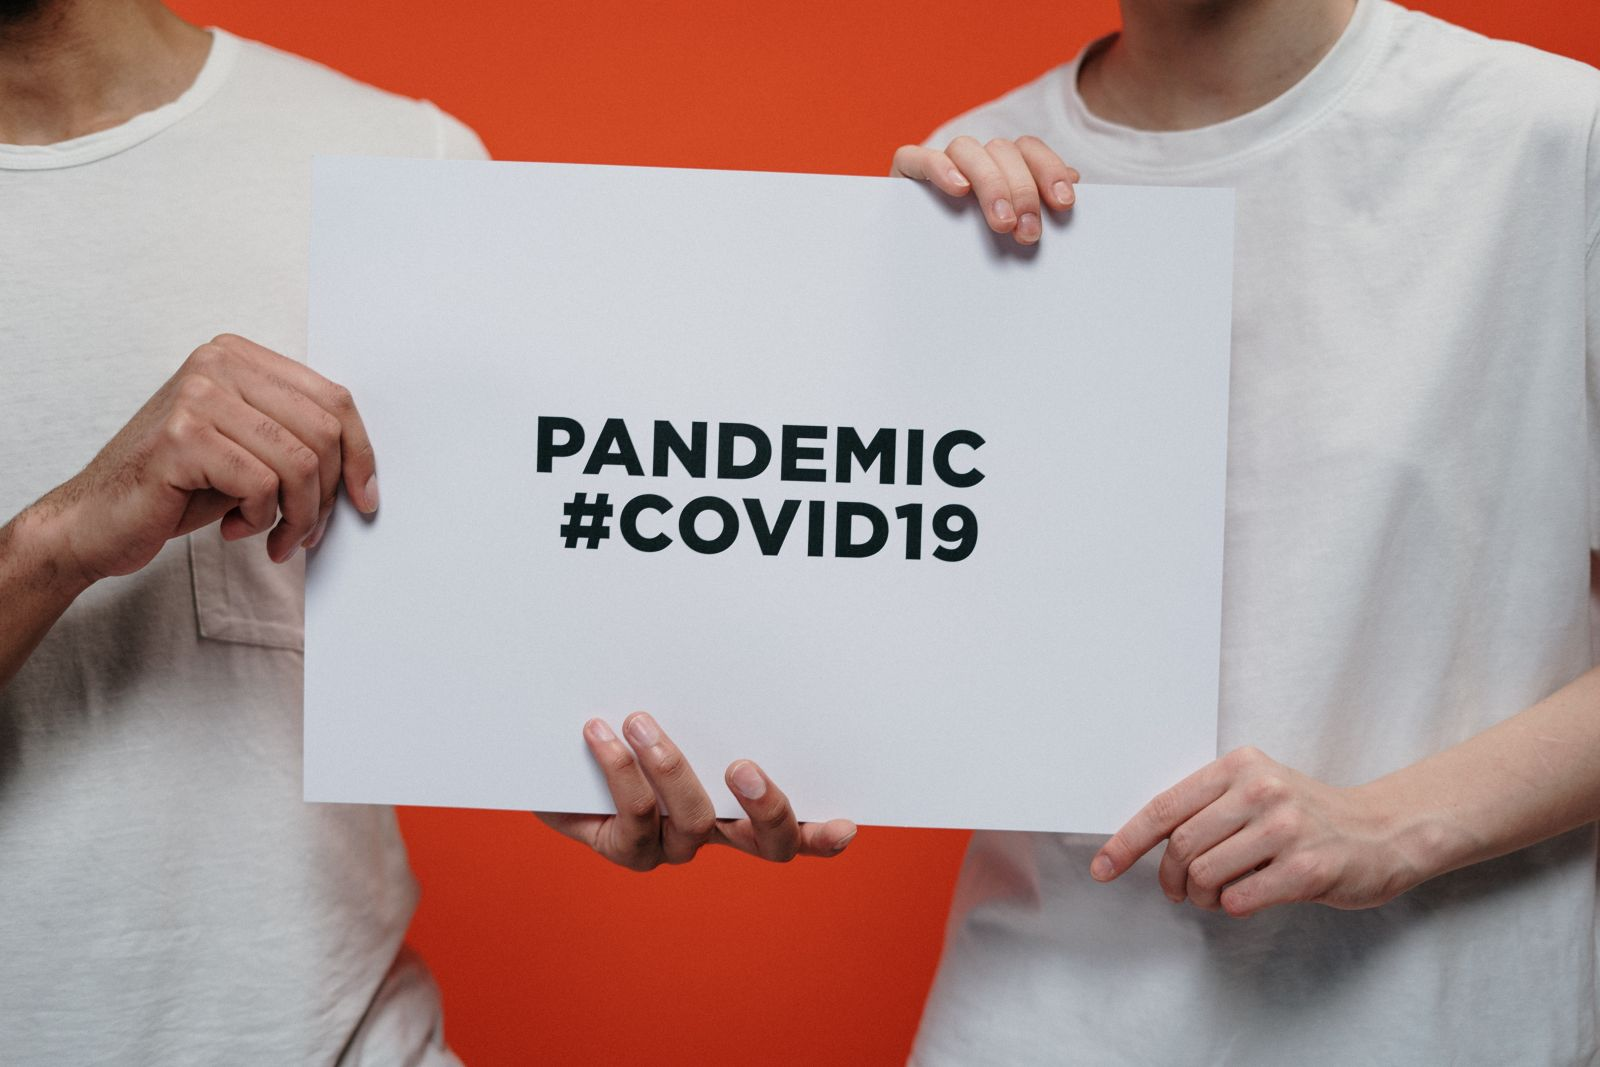 Pandemic Covid sign banner image